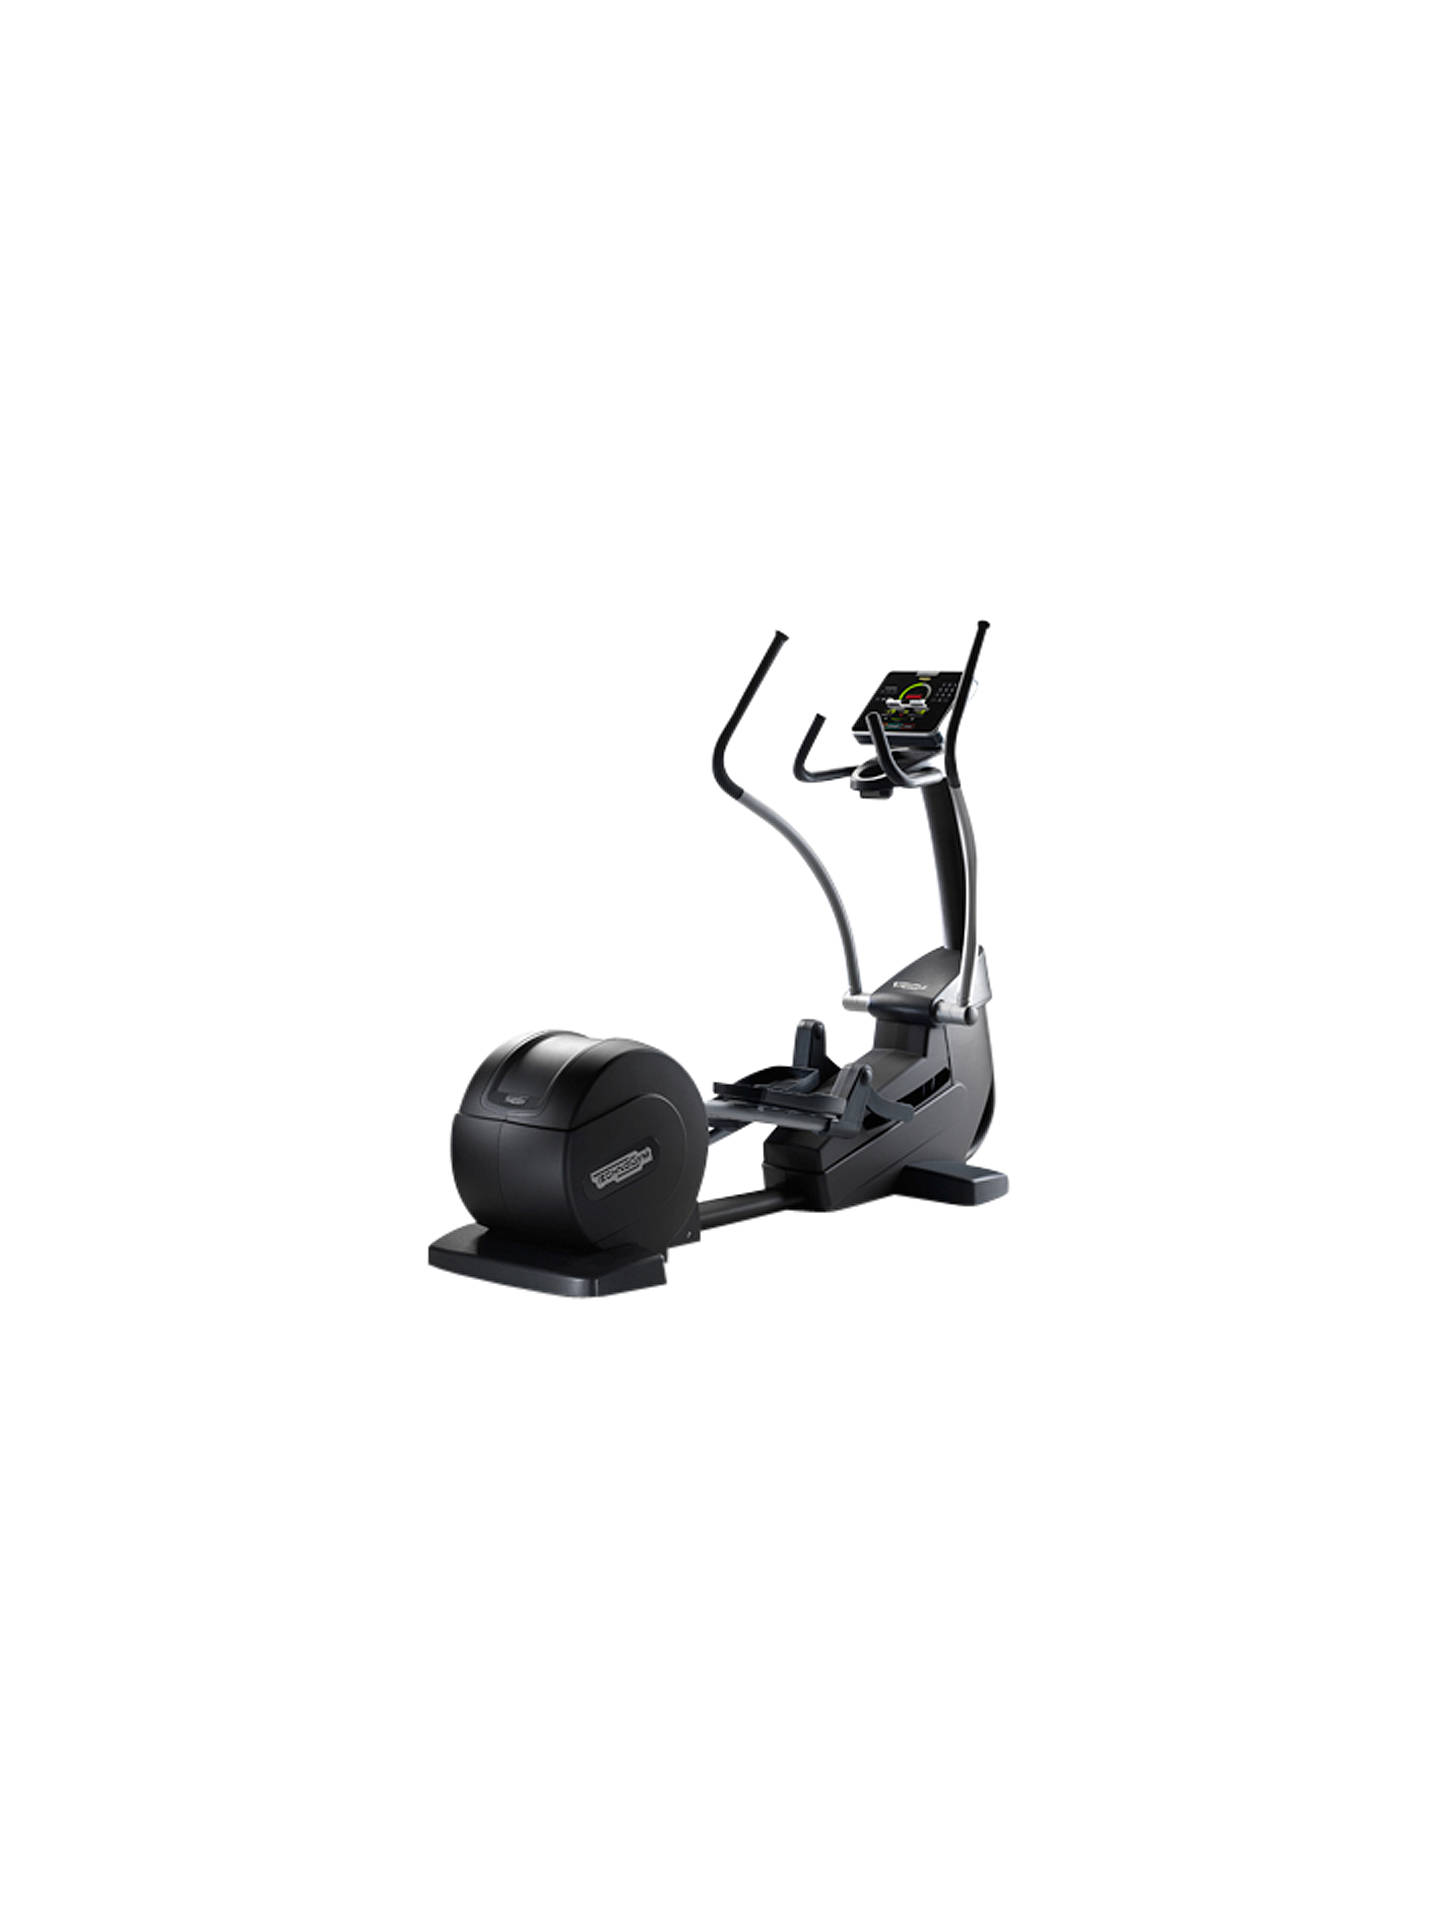 Technogym Synchro Forma Cross Trainer At John Lewis Partners See A Robot Workout Buytechnogym Online